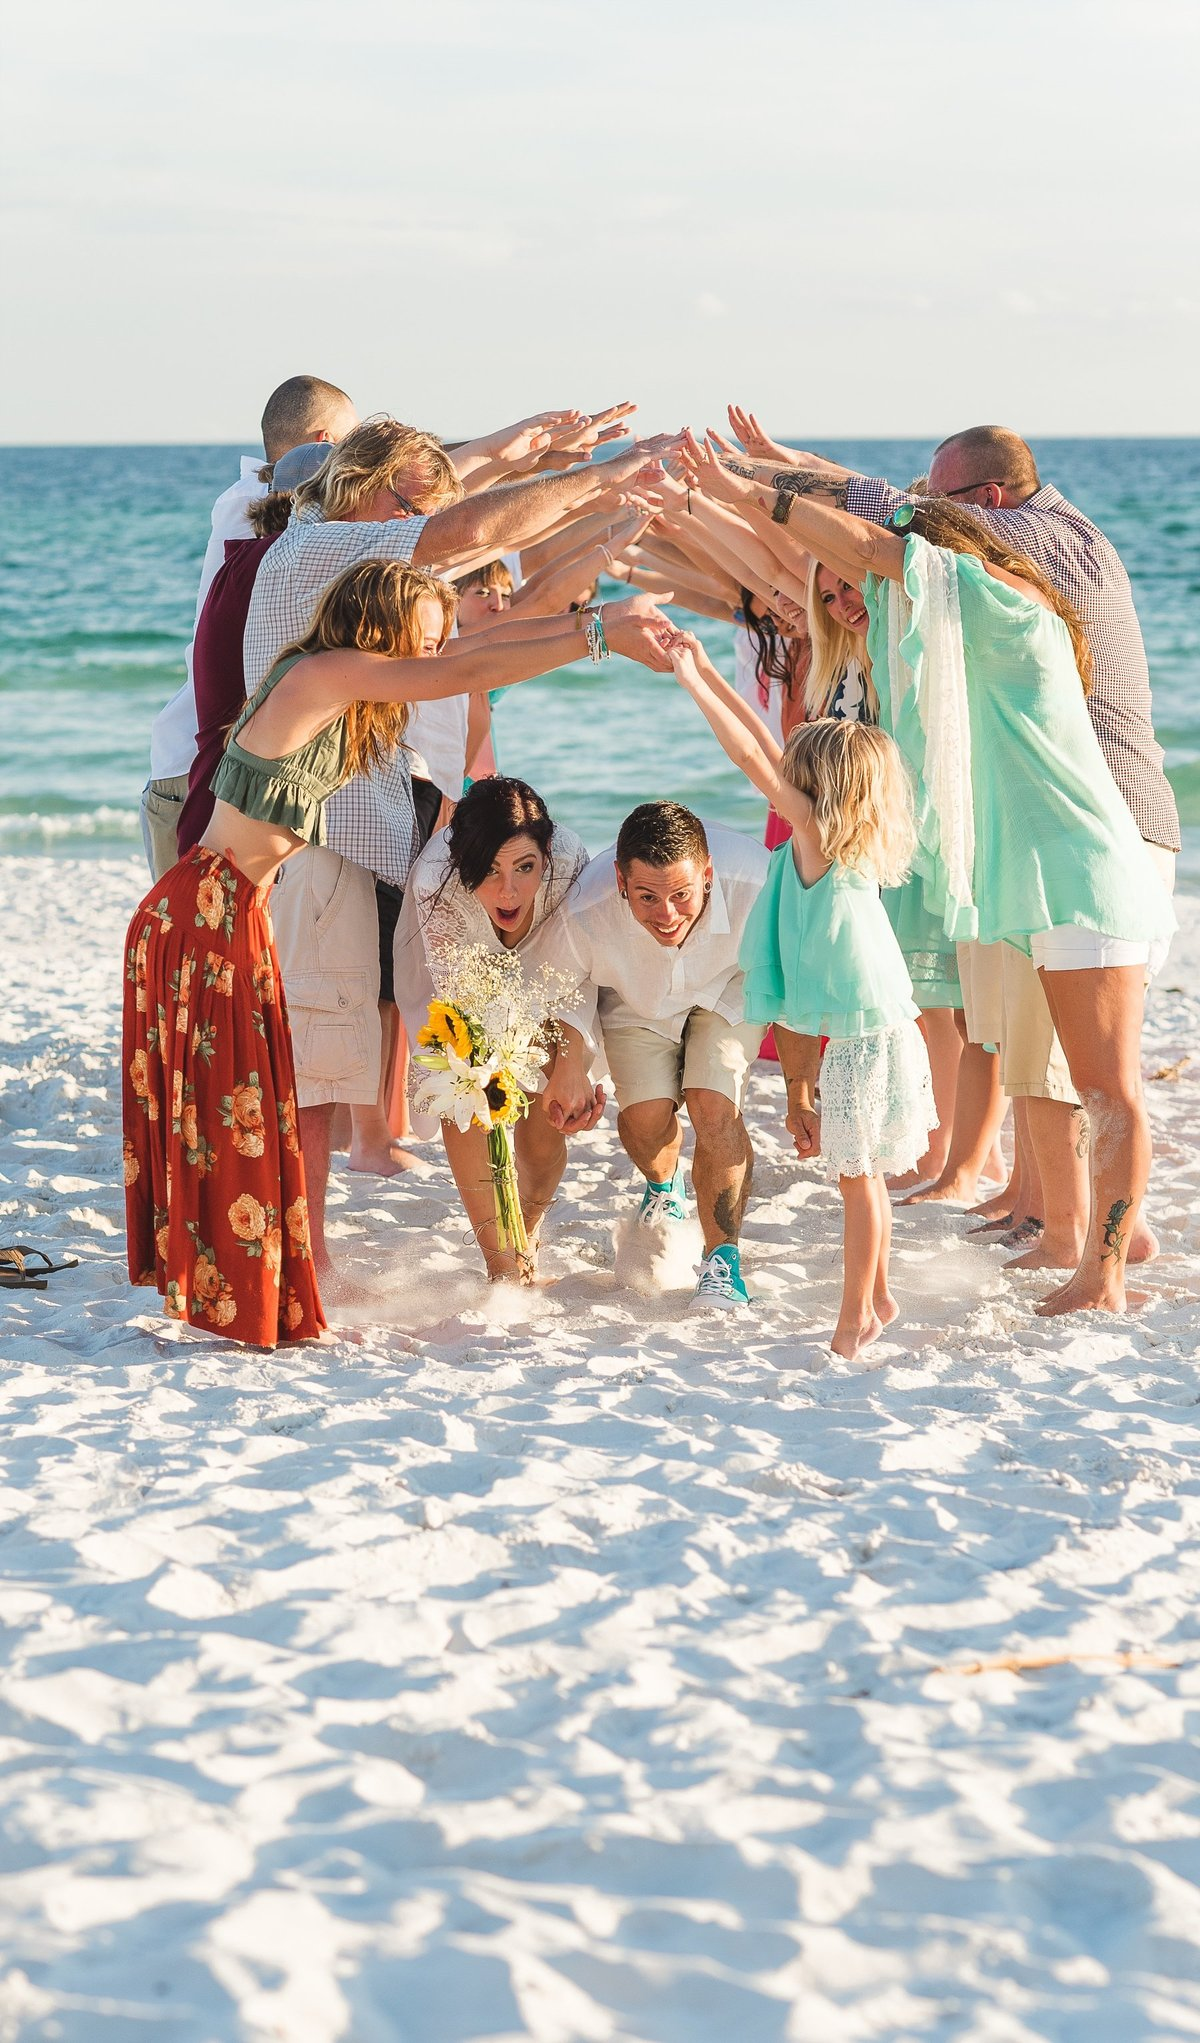 Miss Morse Photography, Pcb photographer, 30A Wedding photographer, Destin wedding photographers, Destin photography, Florida wedding photographers, Miramar beach wedding, Beach wedding photographer, photo of bride and groom going through tunnel